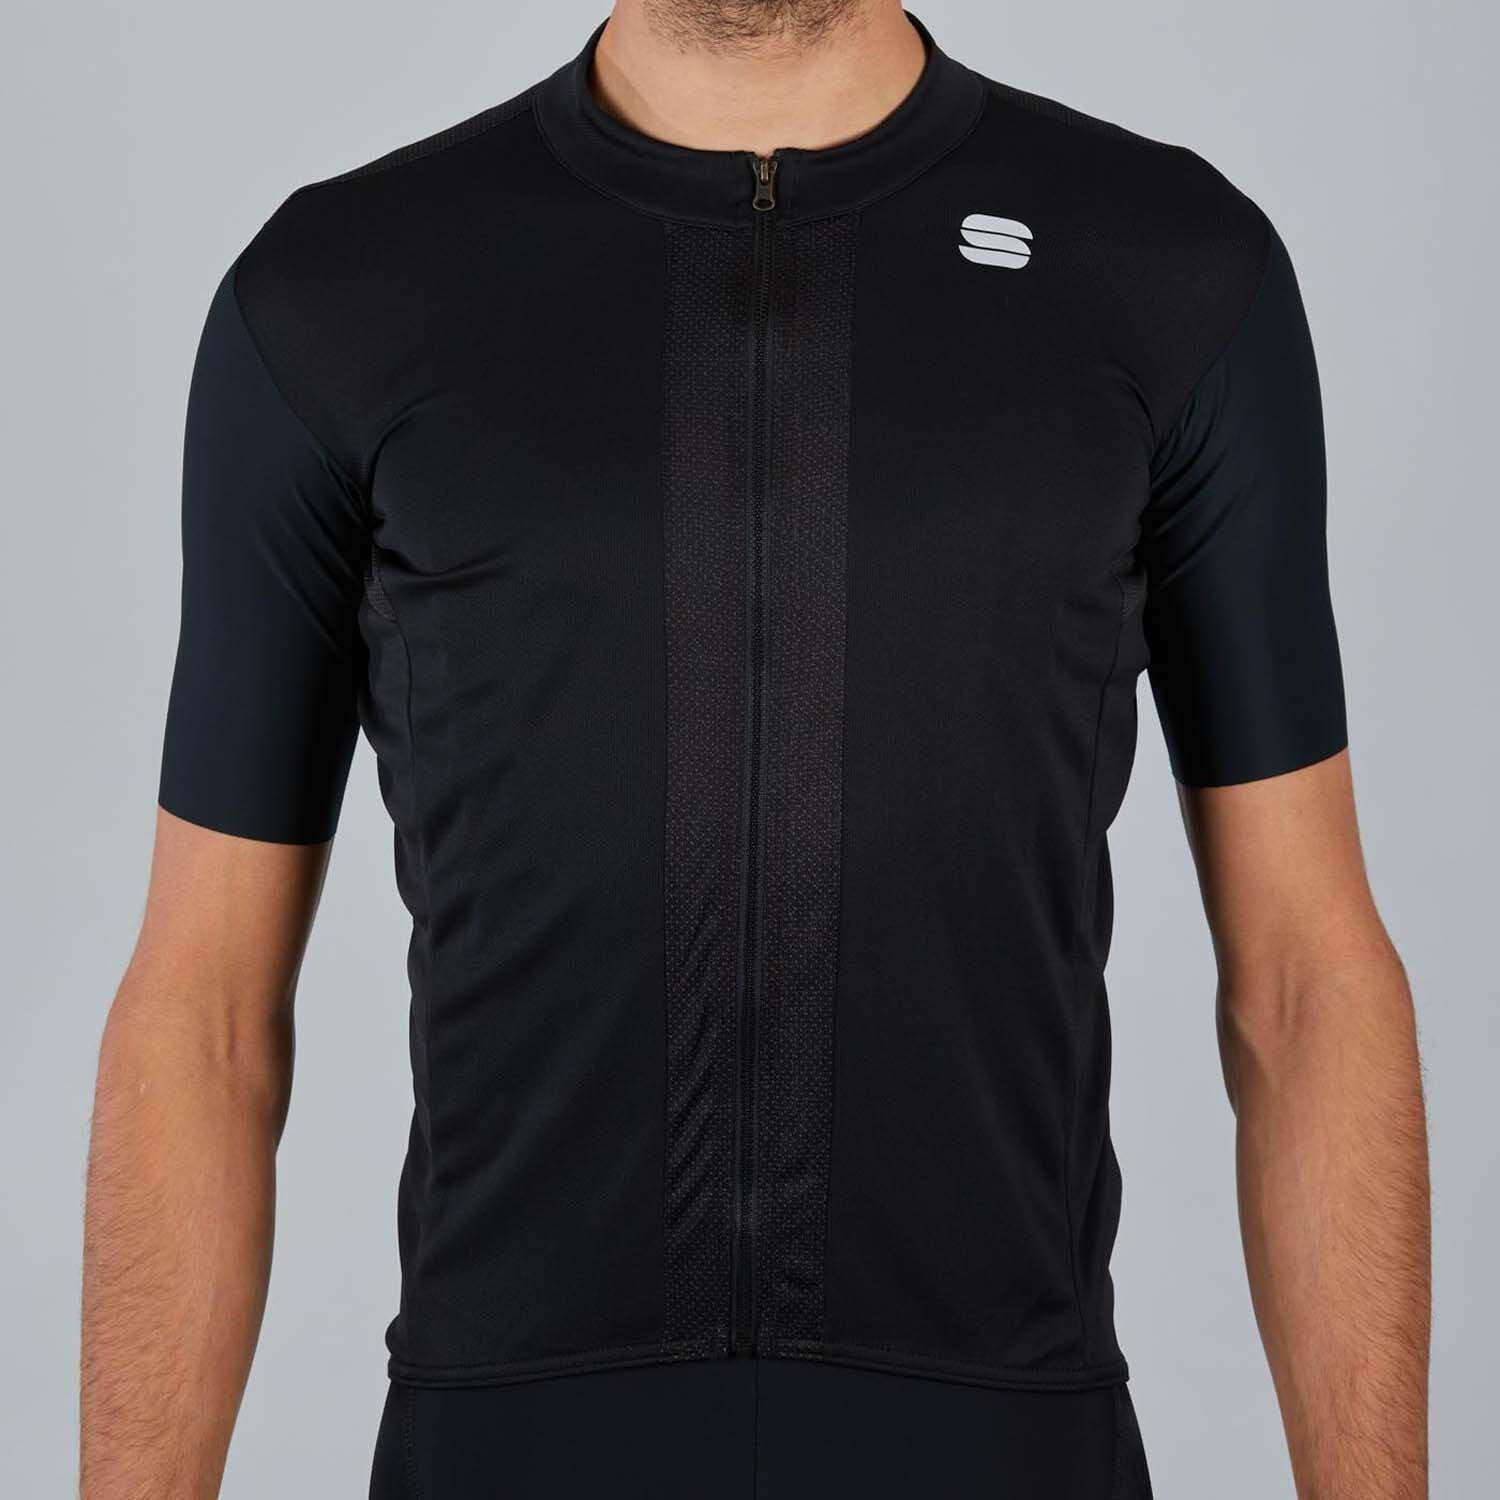 Sportful-Sportful Strike Jersey-Black/White-XS-SF200120021-saddleback-elite-performance-cycling